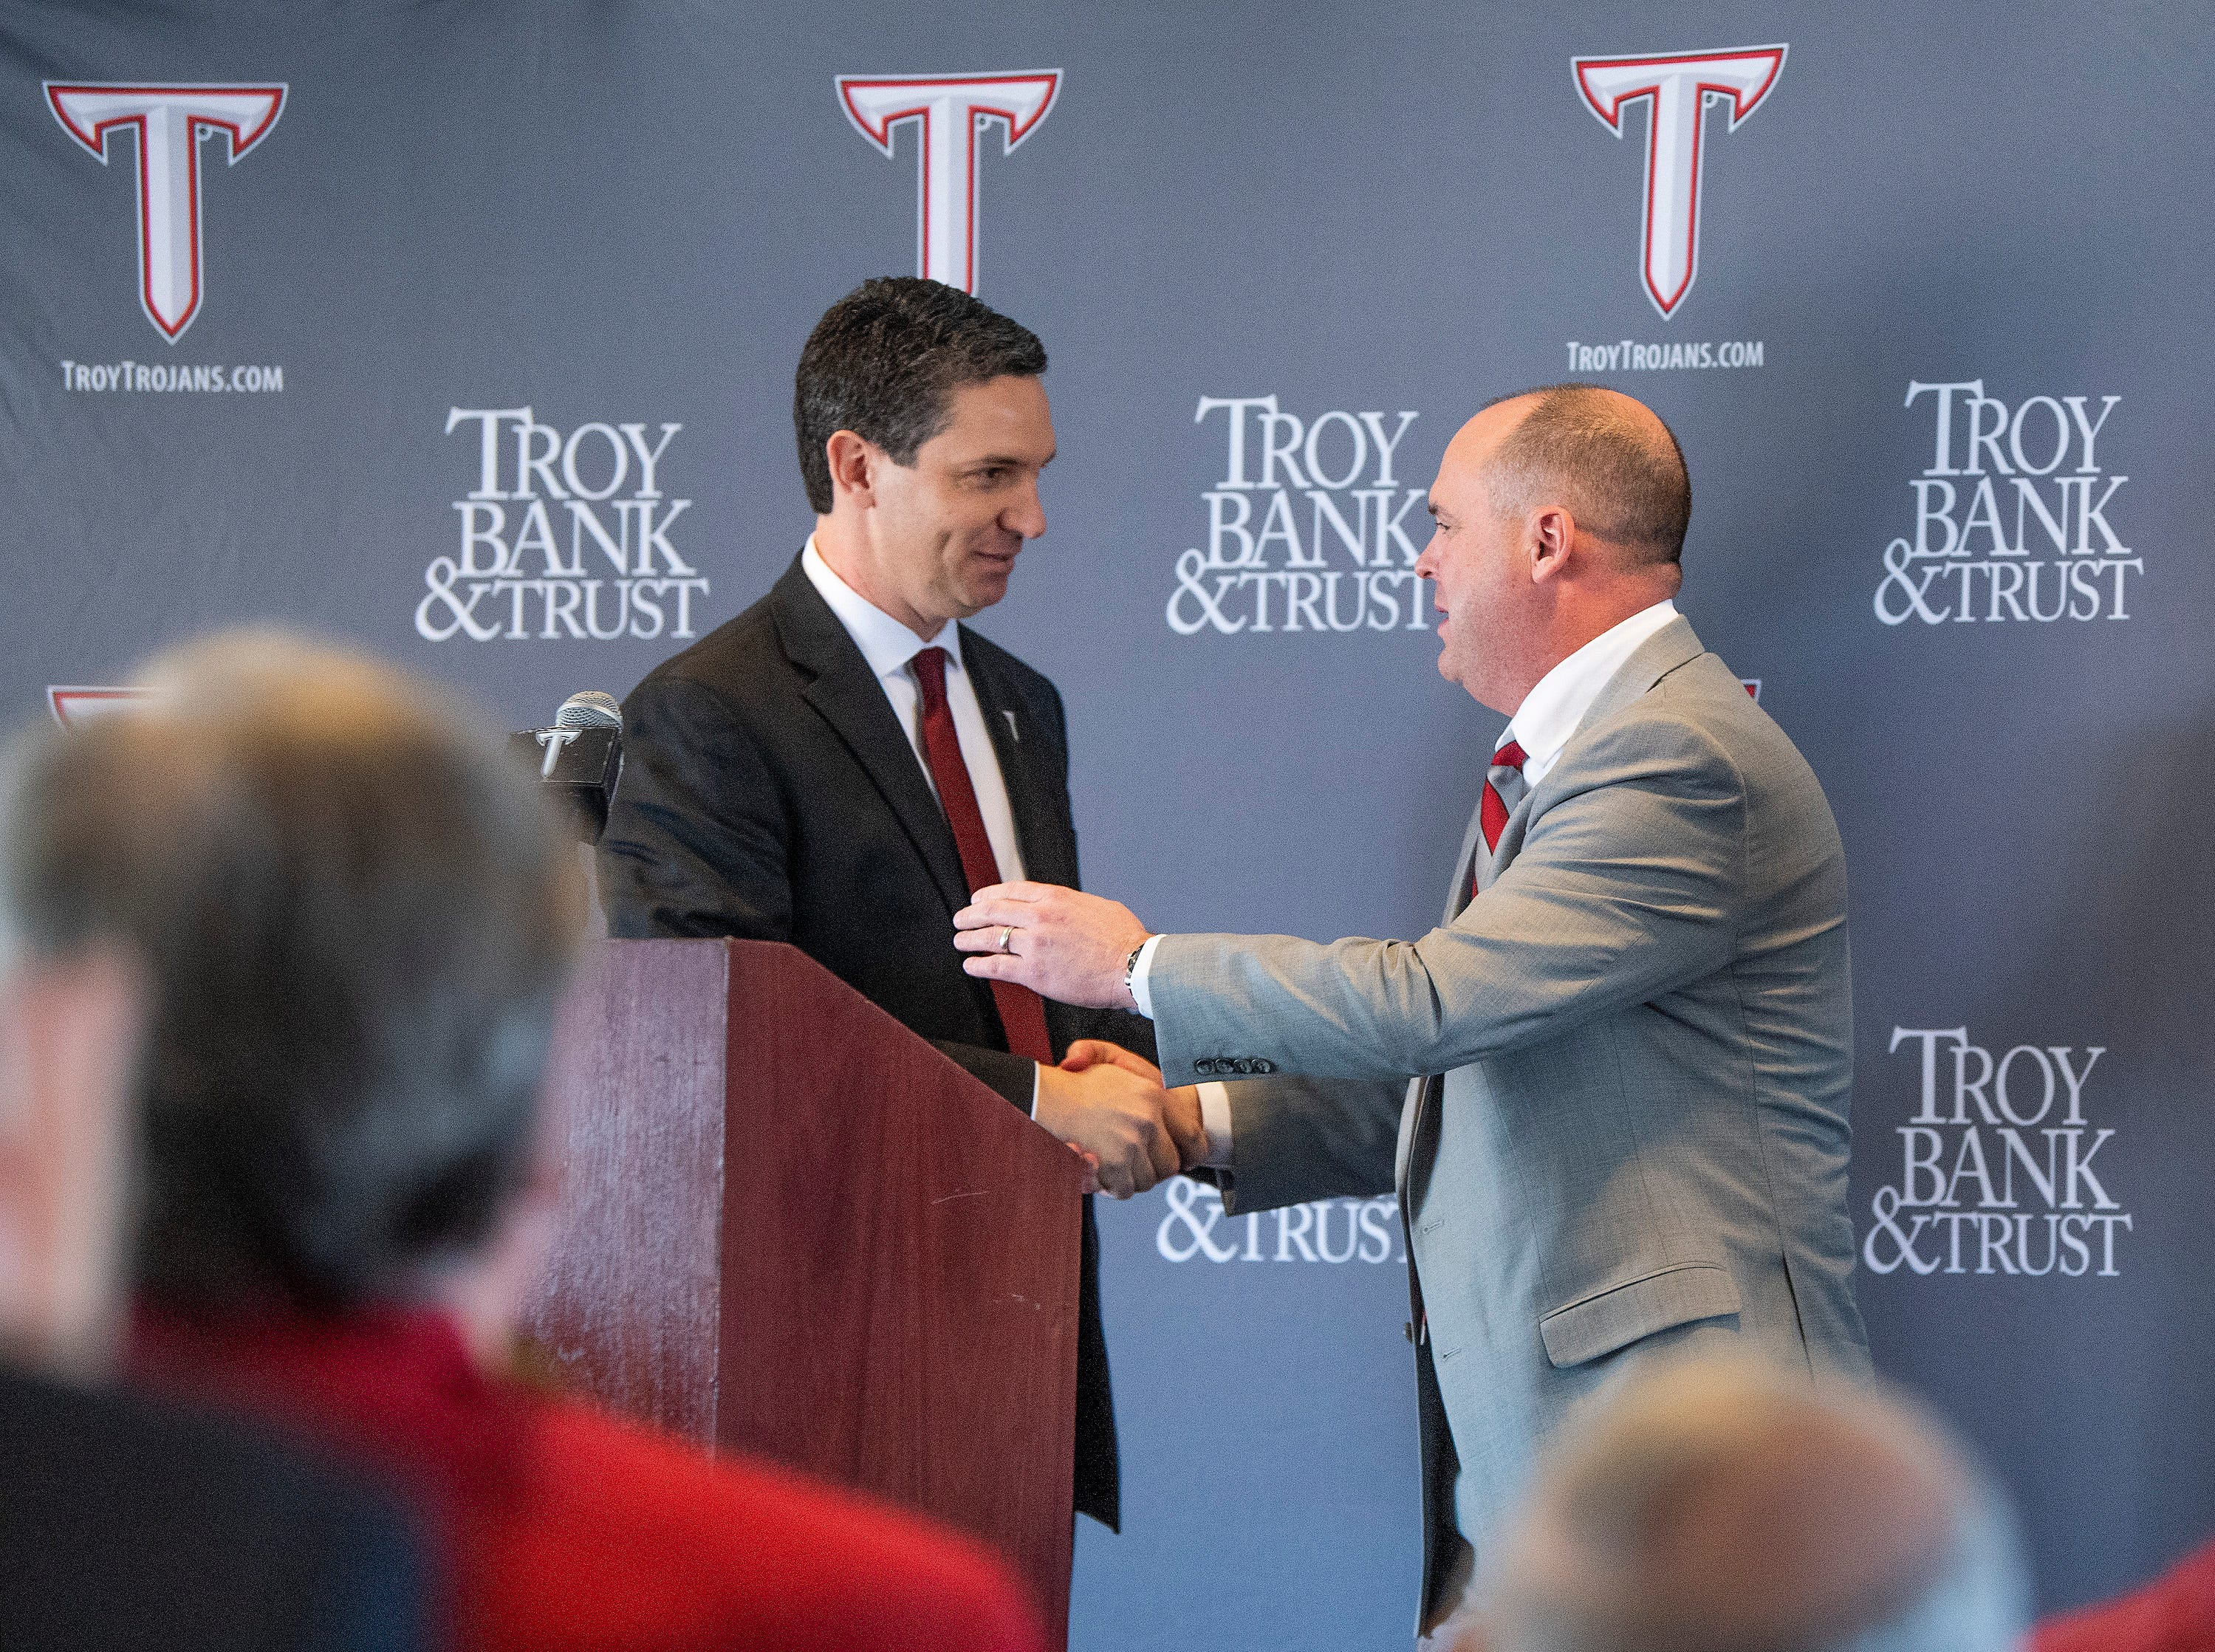 Troy University athletic Director Jeremy McClain, left, greets new Head Football Coach Chip Lindsey during his introduction on the Troy campus in Troy, Ala., on Friday January 11, 2019.